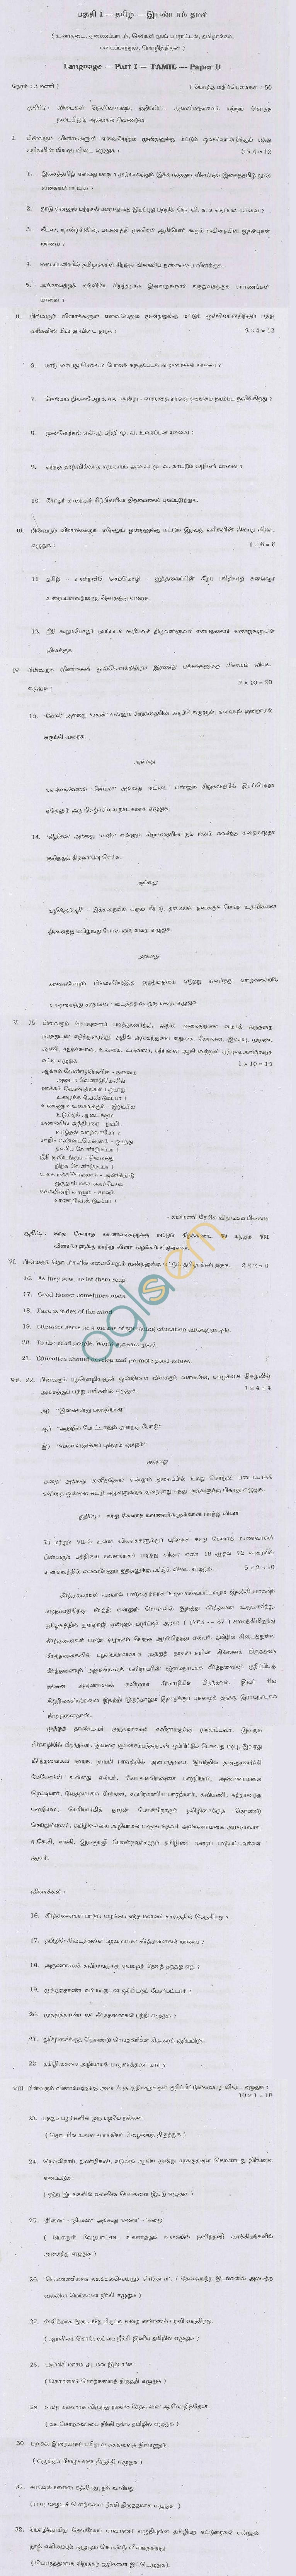 TN Board Higher Secondary (Plus 2)TamilQuestion PapersSeptember 2011